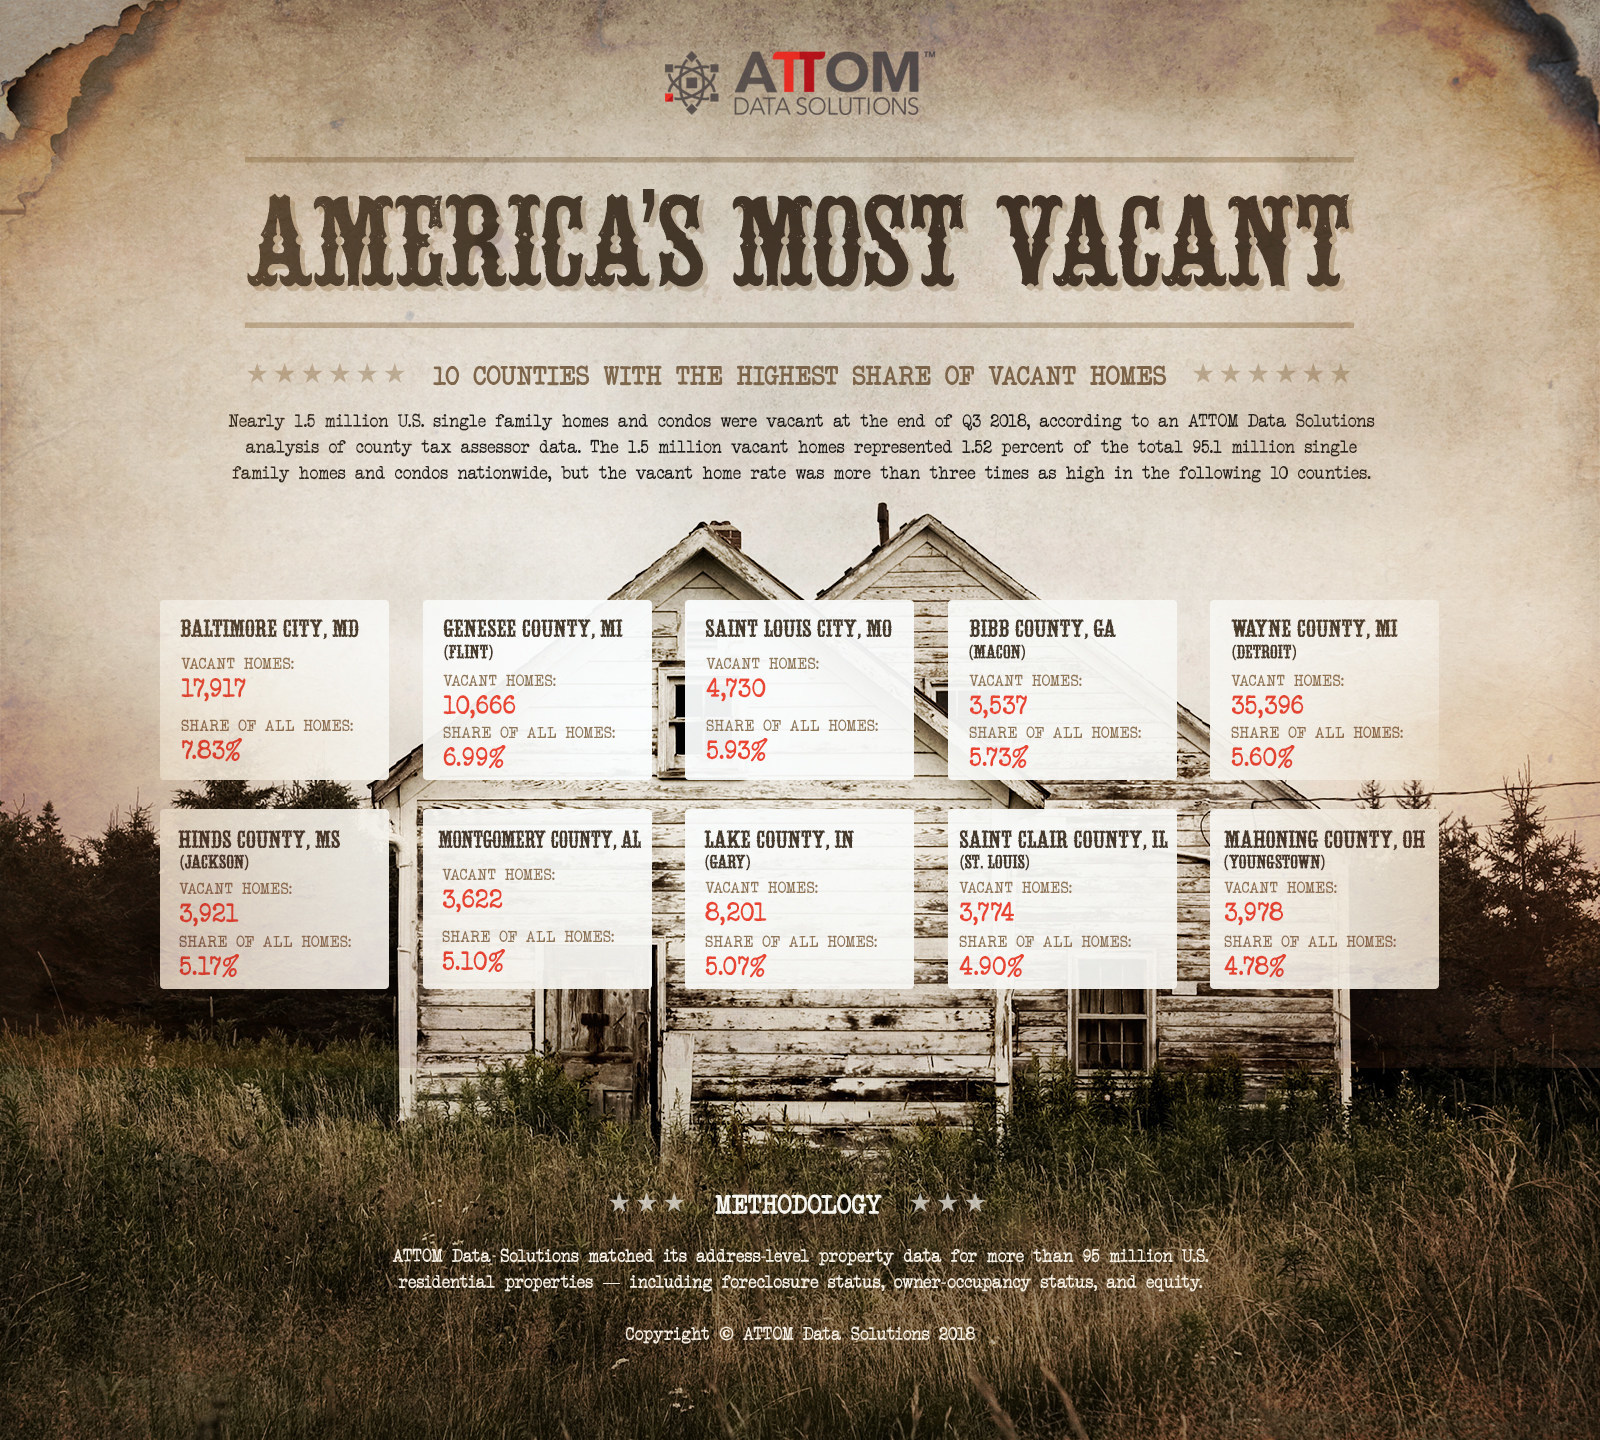 America's Most Vacant: Nearly 1.5 million U.S. single family homes and condos were vacant at the end of Q3 2018